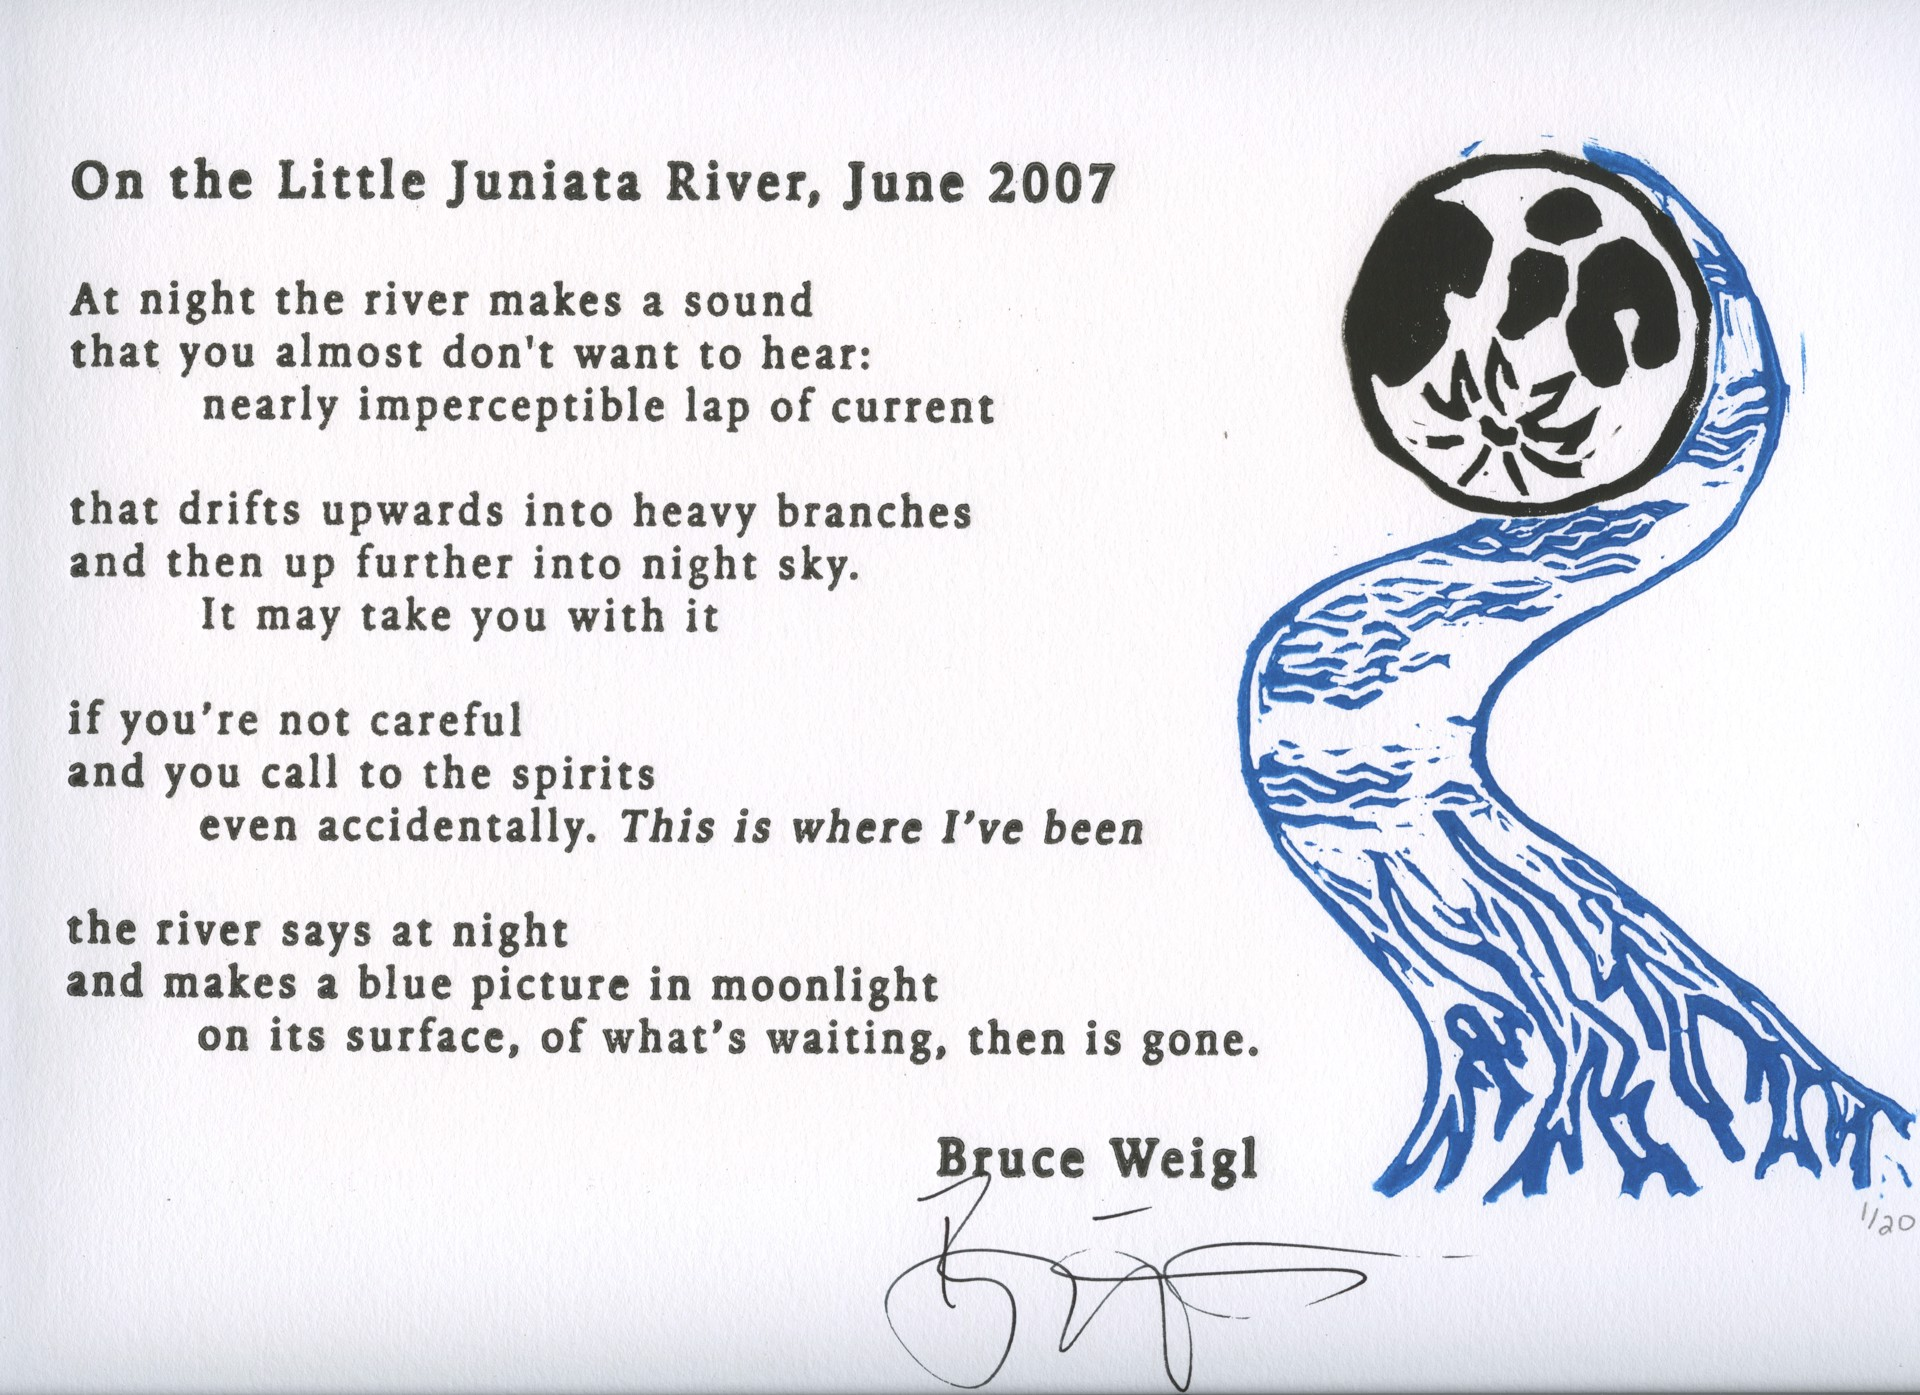 On the Little Juniata River, 2017 by Allison Hull